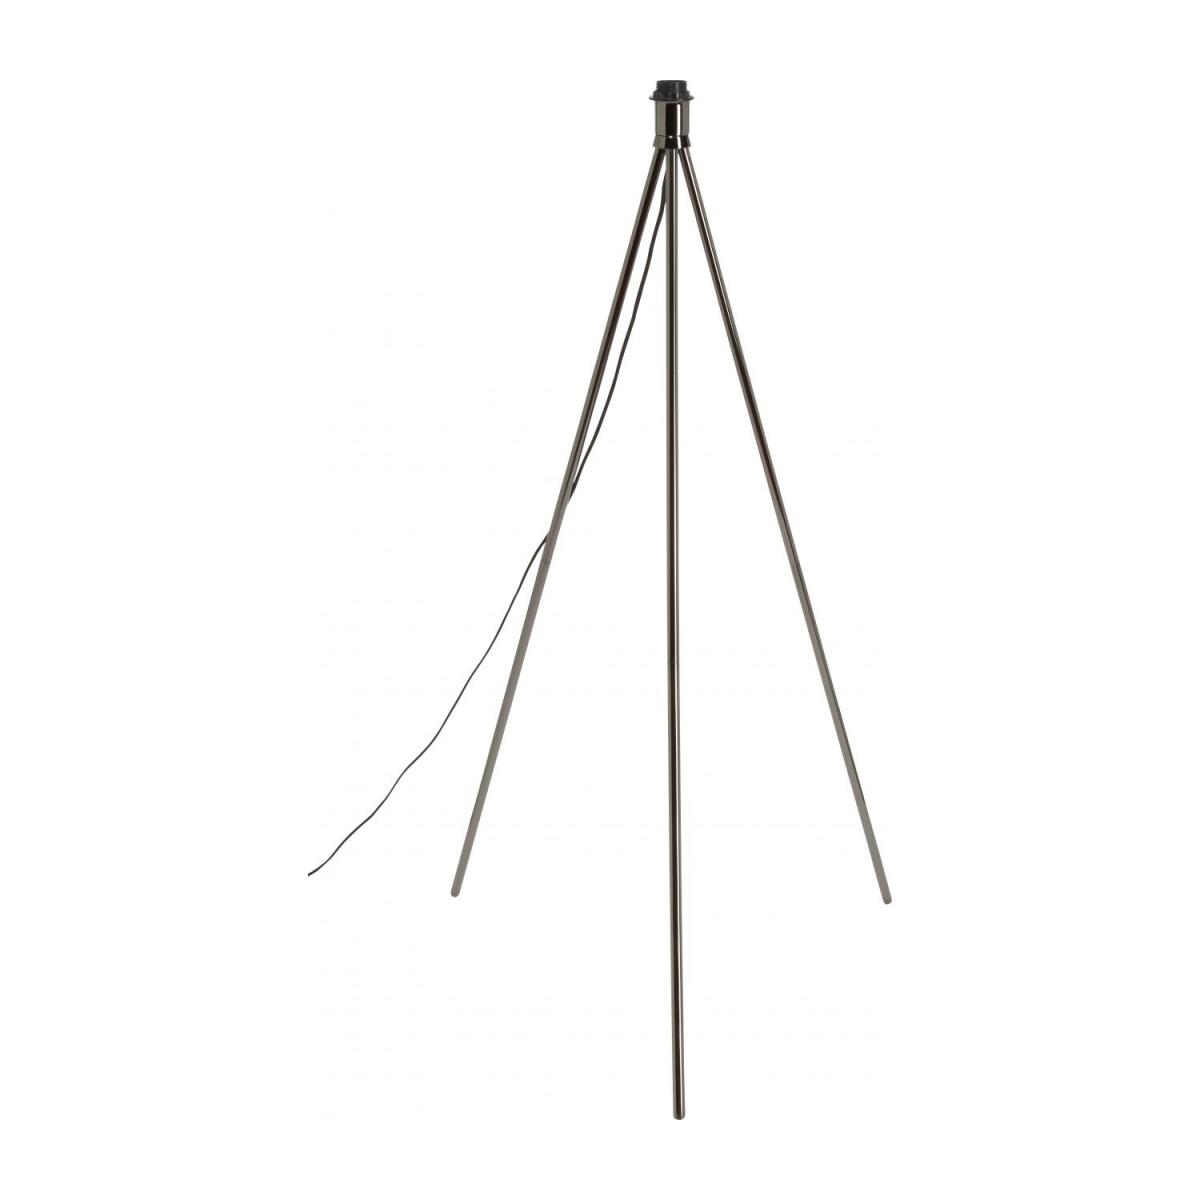 Metal floor lamp base tripod, black n°1